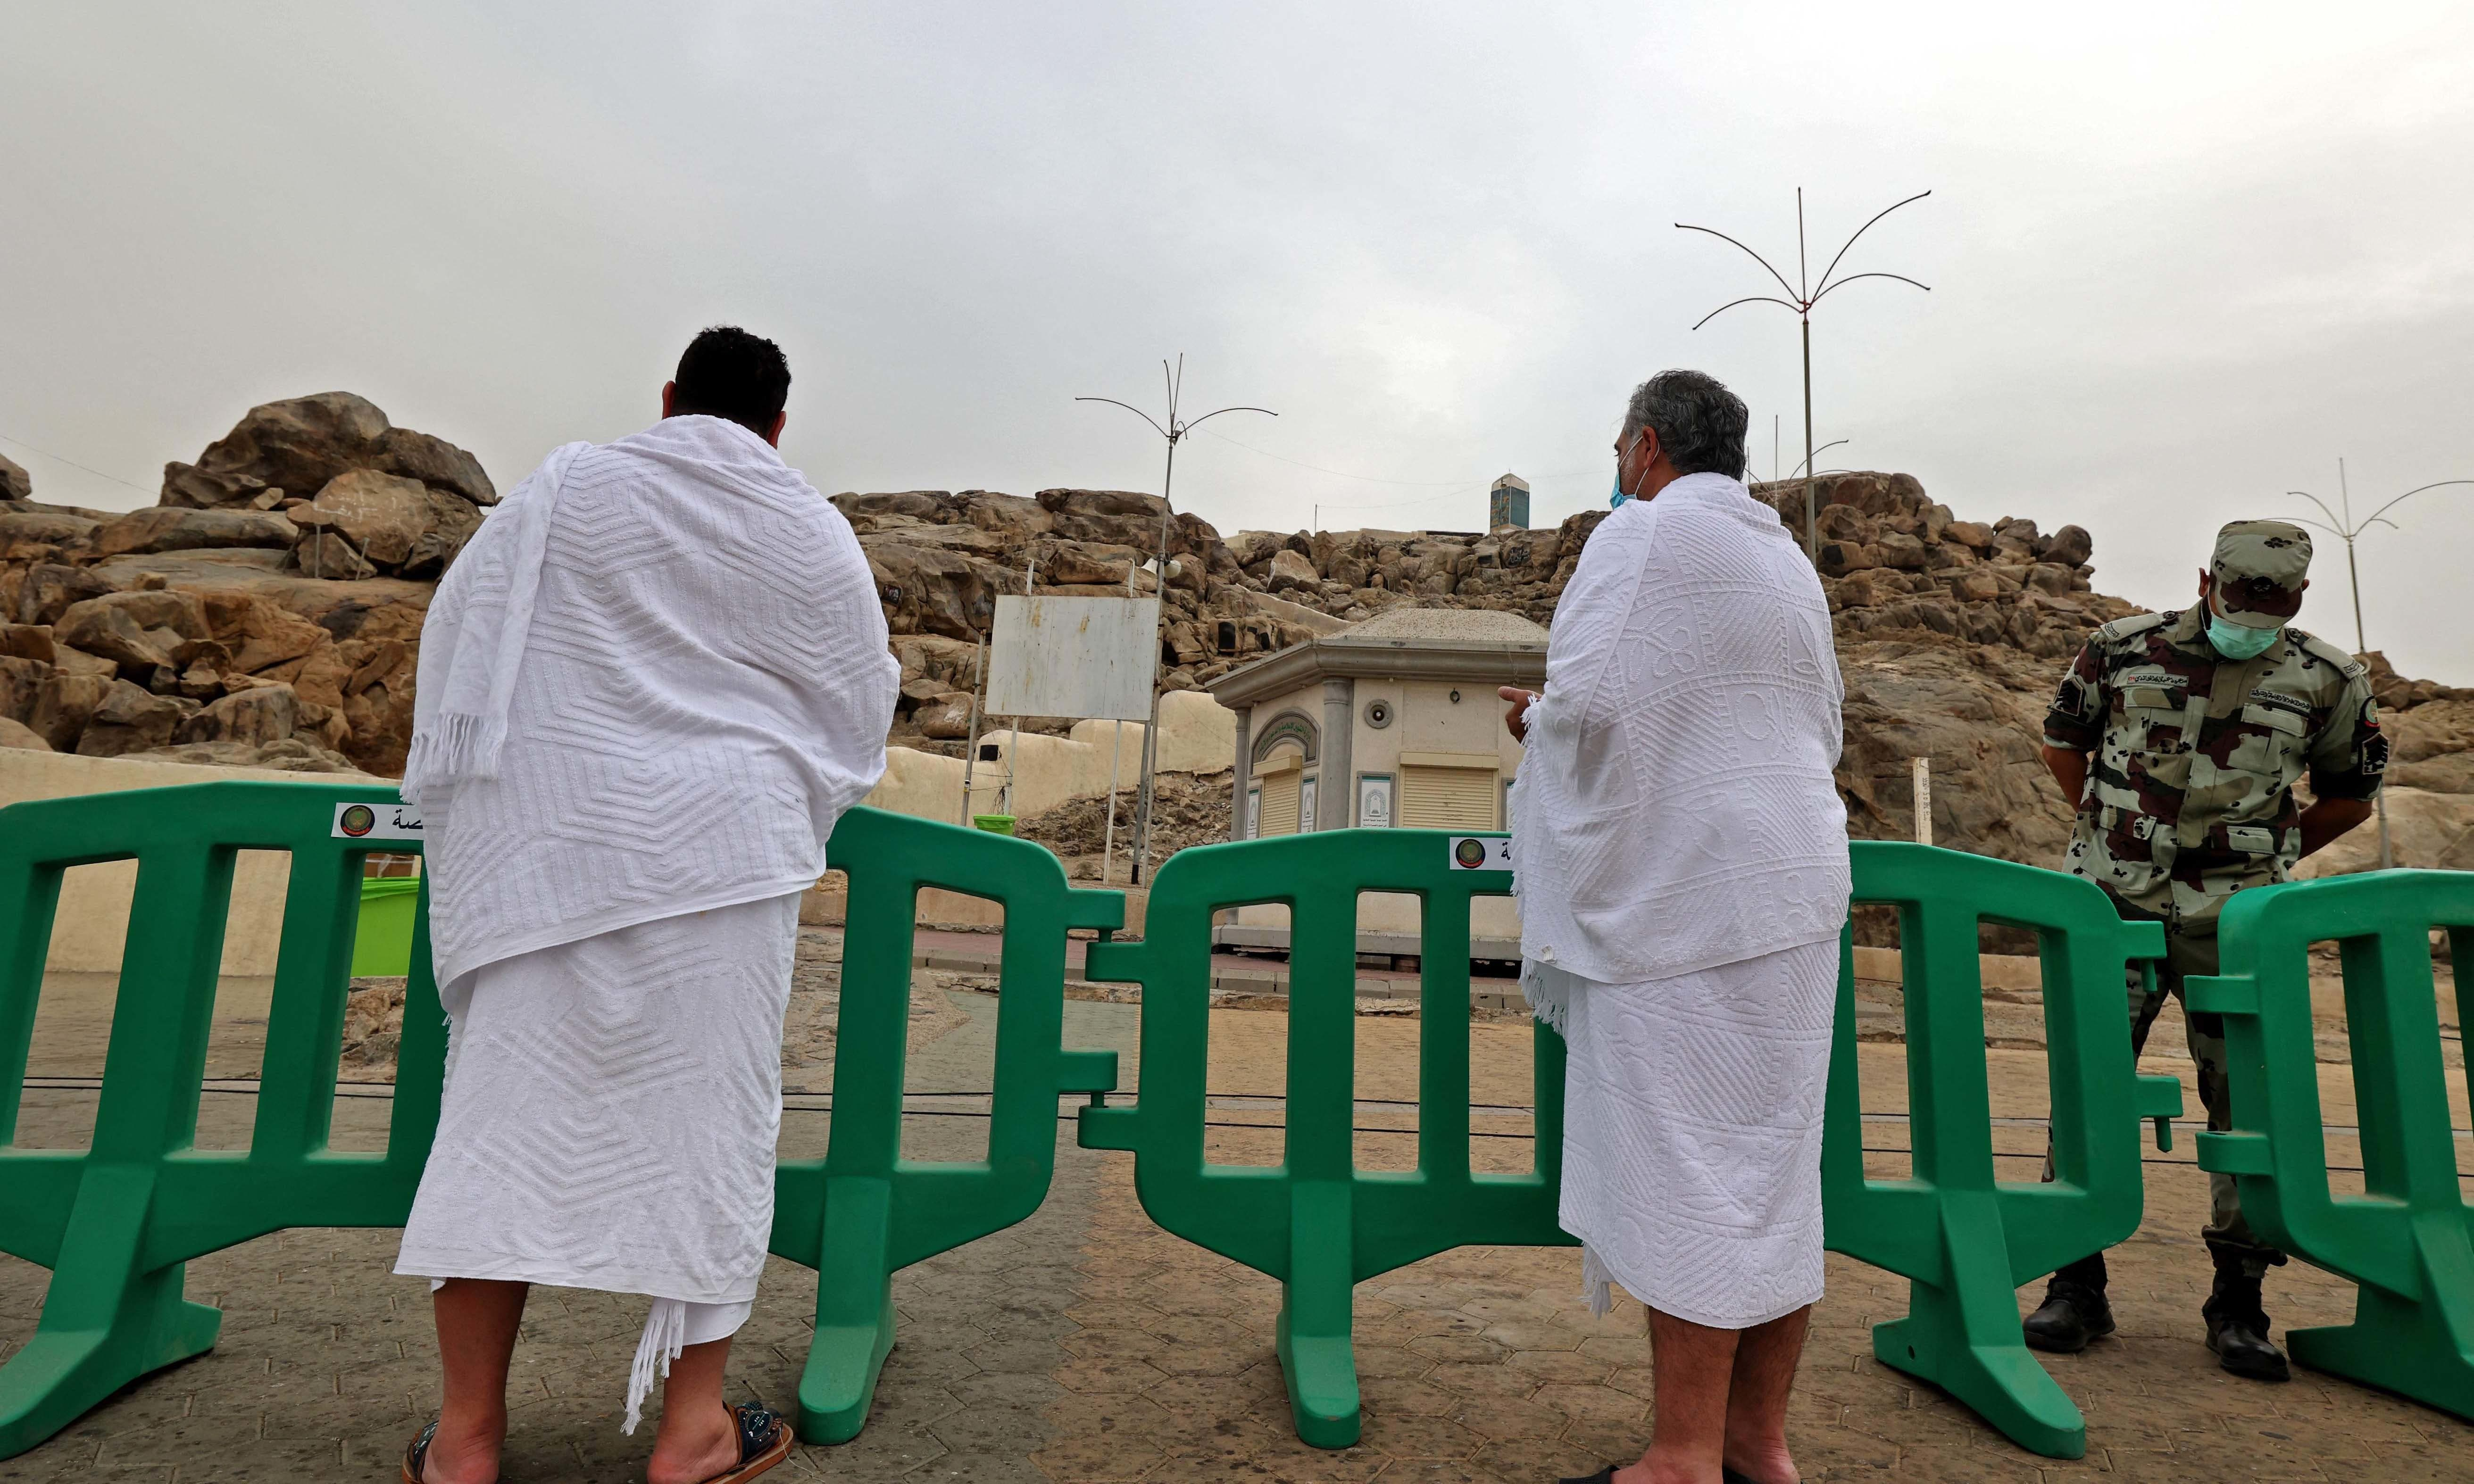 Mulism pilgrims pray on Mount Arafat, southeast of the holy city of Makkah, during the climax of the Haj pilgrimage amid the Covid-19 pandemic, on July 19. — AFP